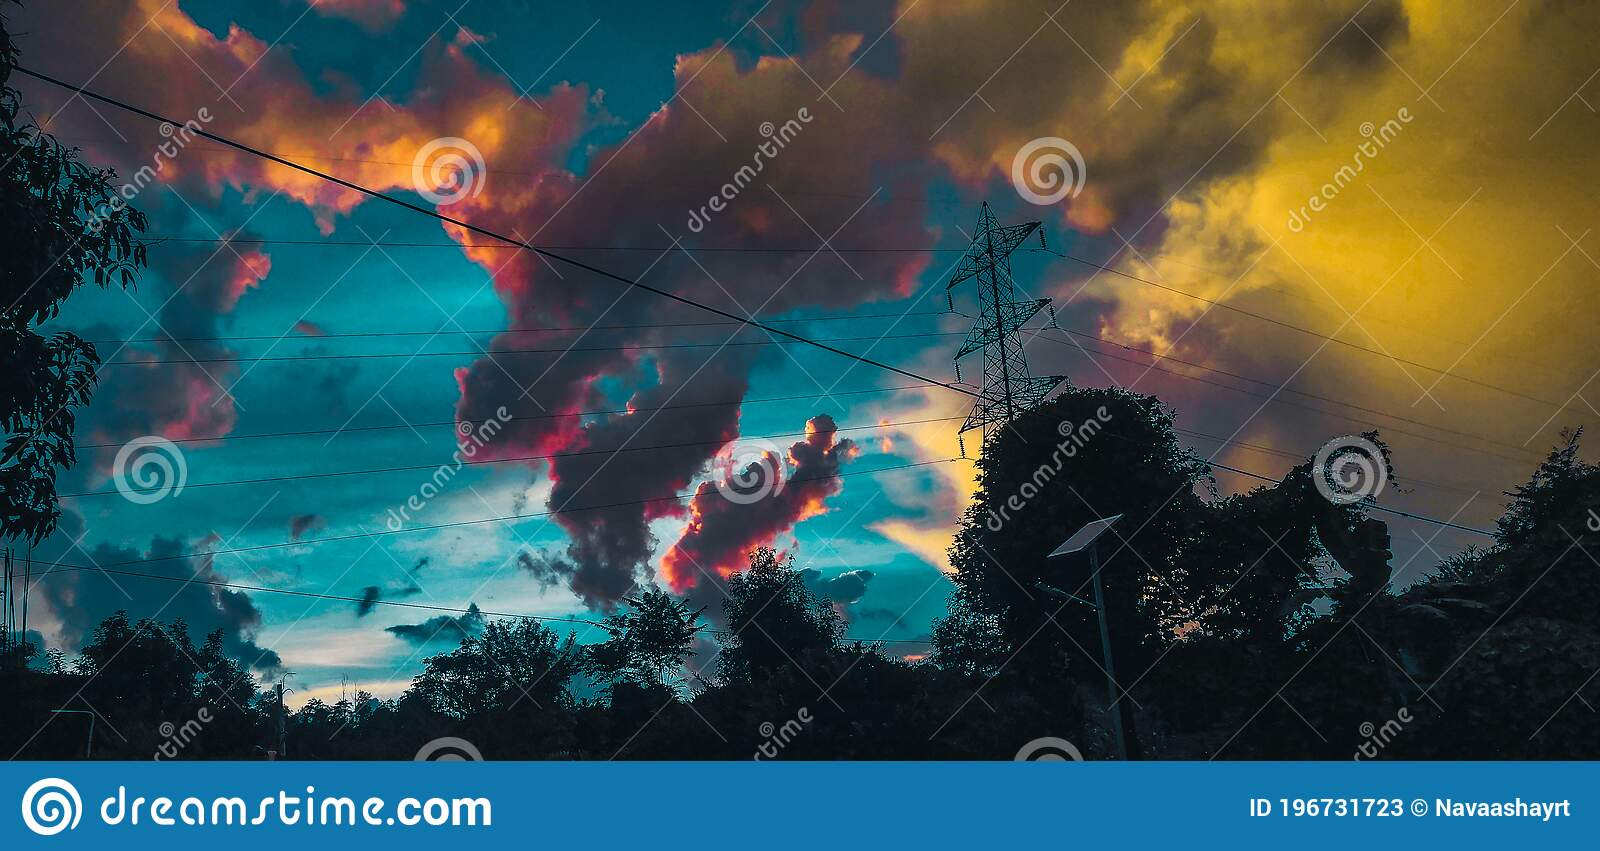 466 Anime Sky Photos Free Royalty Free Stock Photos From Dreamstime